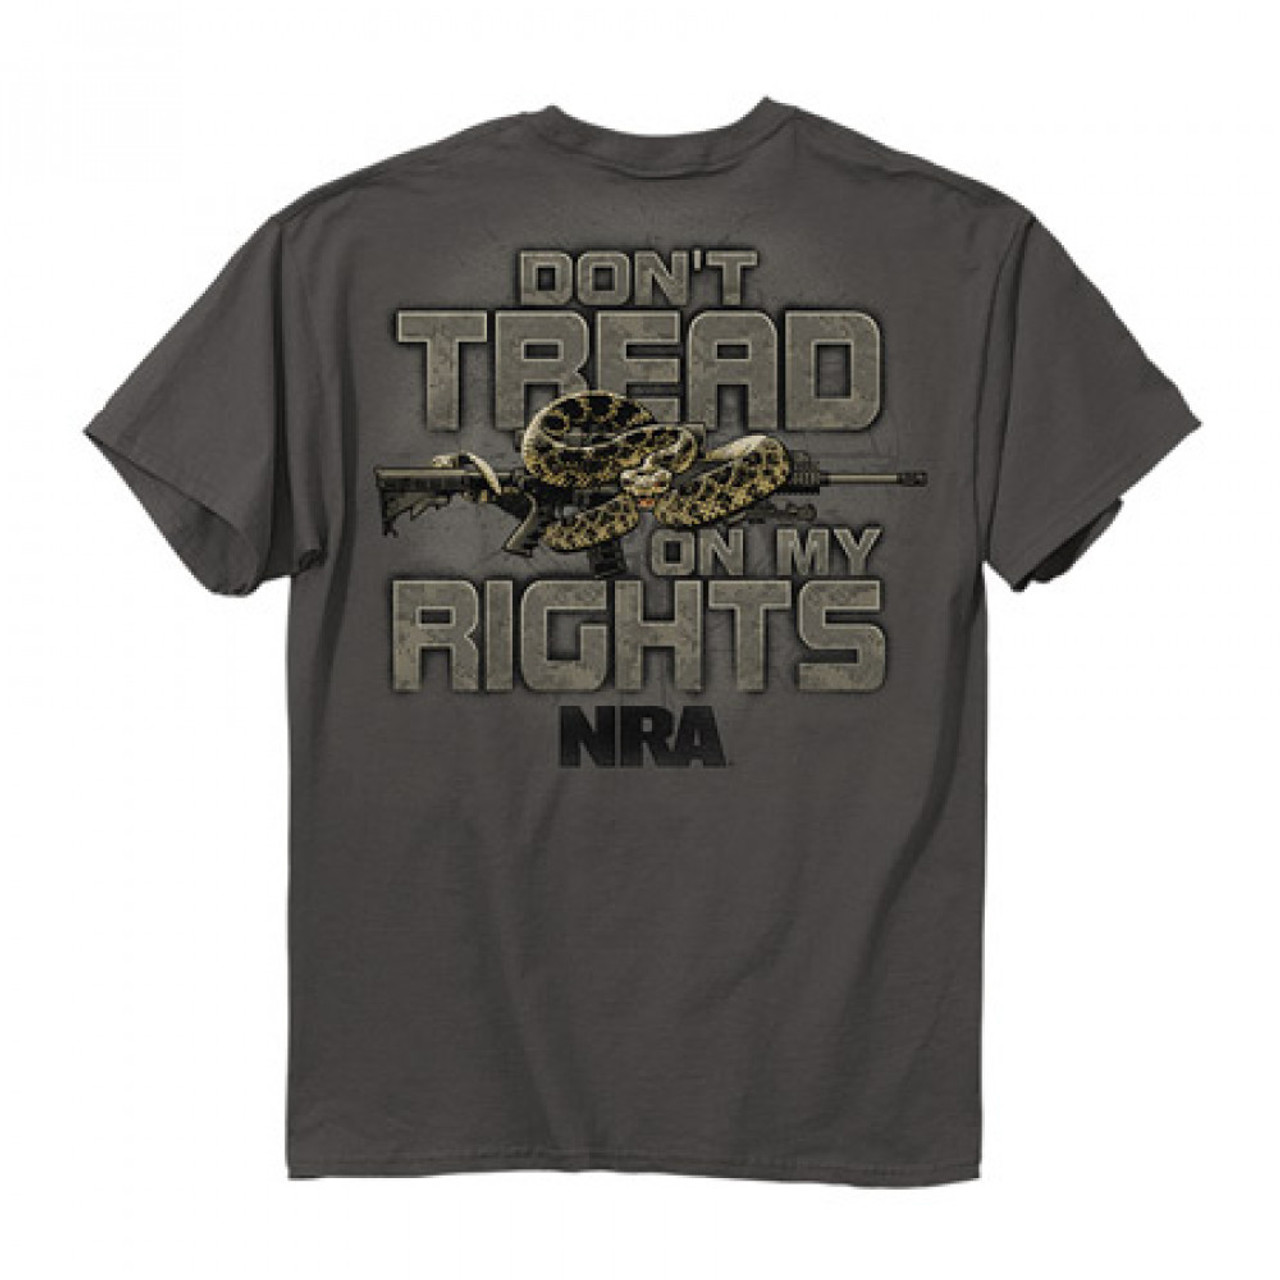 **(NEW-TRENDY-OFFICIALLY-LICENSED-N.R.A.DON'T-TREAD-ON-MY-RIGHTS & SNAKE,NICE-GRAPHIC-PRINTED-PREMIUM-DOUBLE-SIDED-TEES:)**